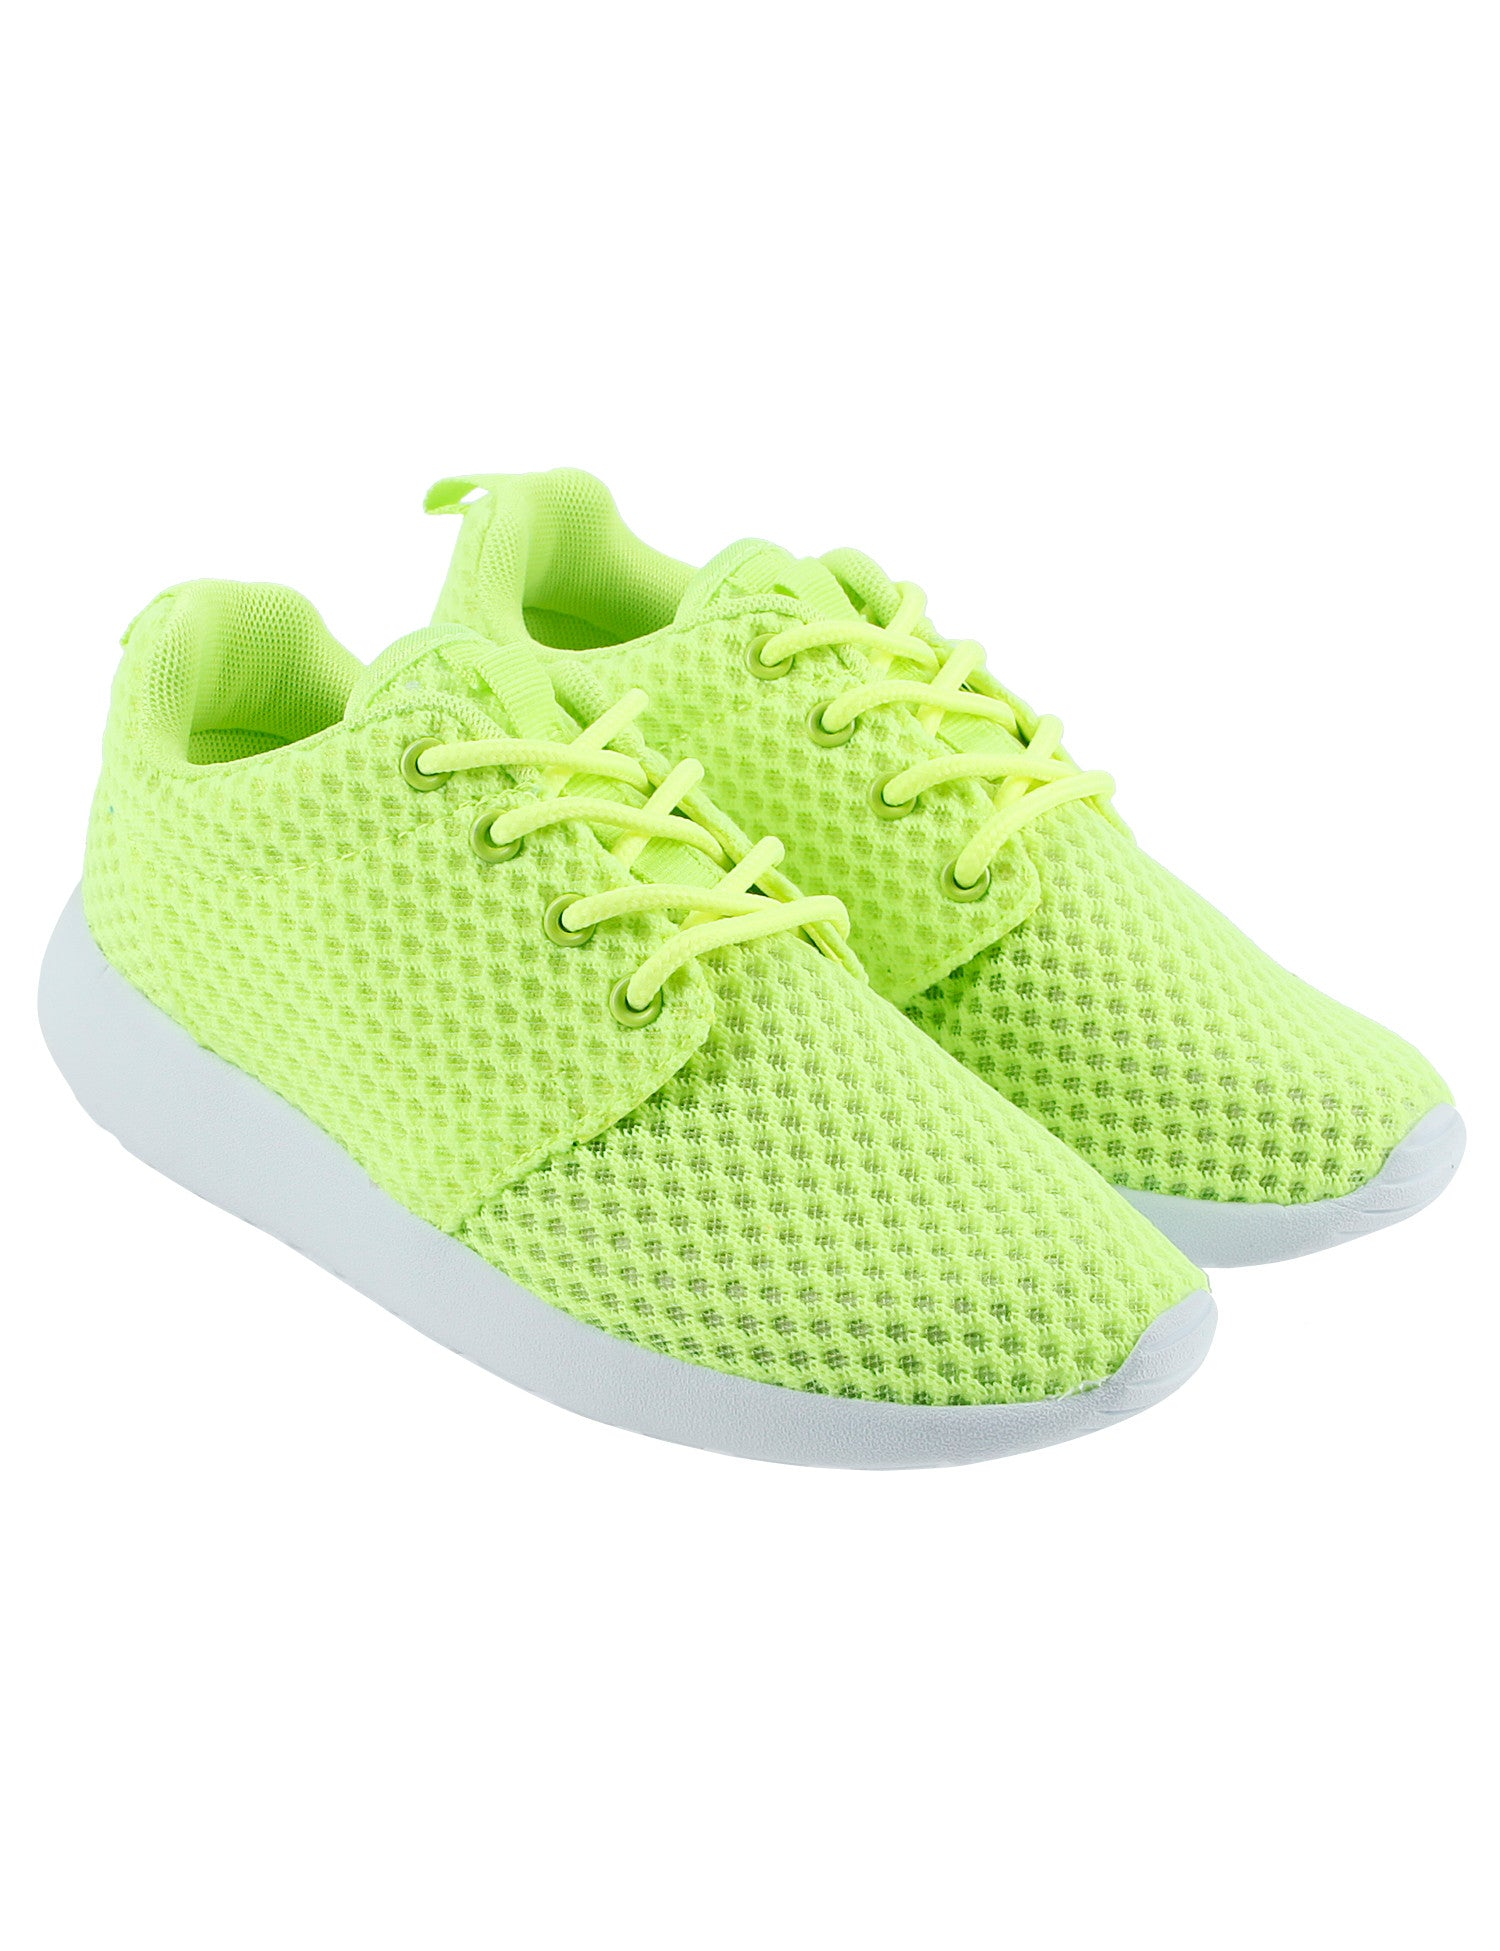 Cultz 851128W Women Shoes  Green